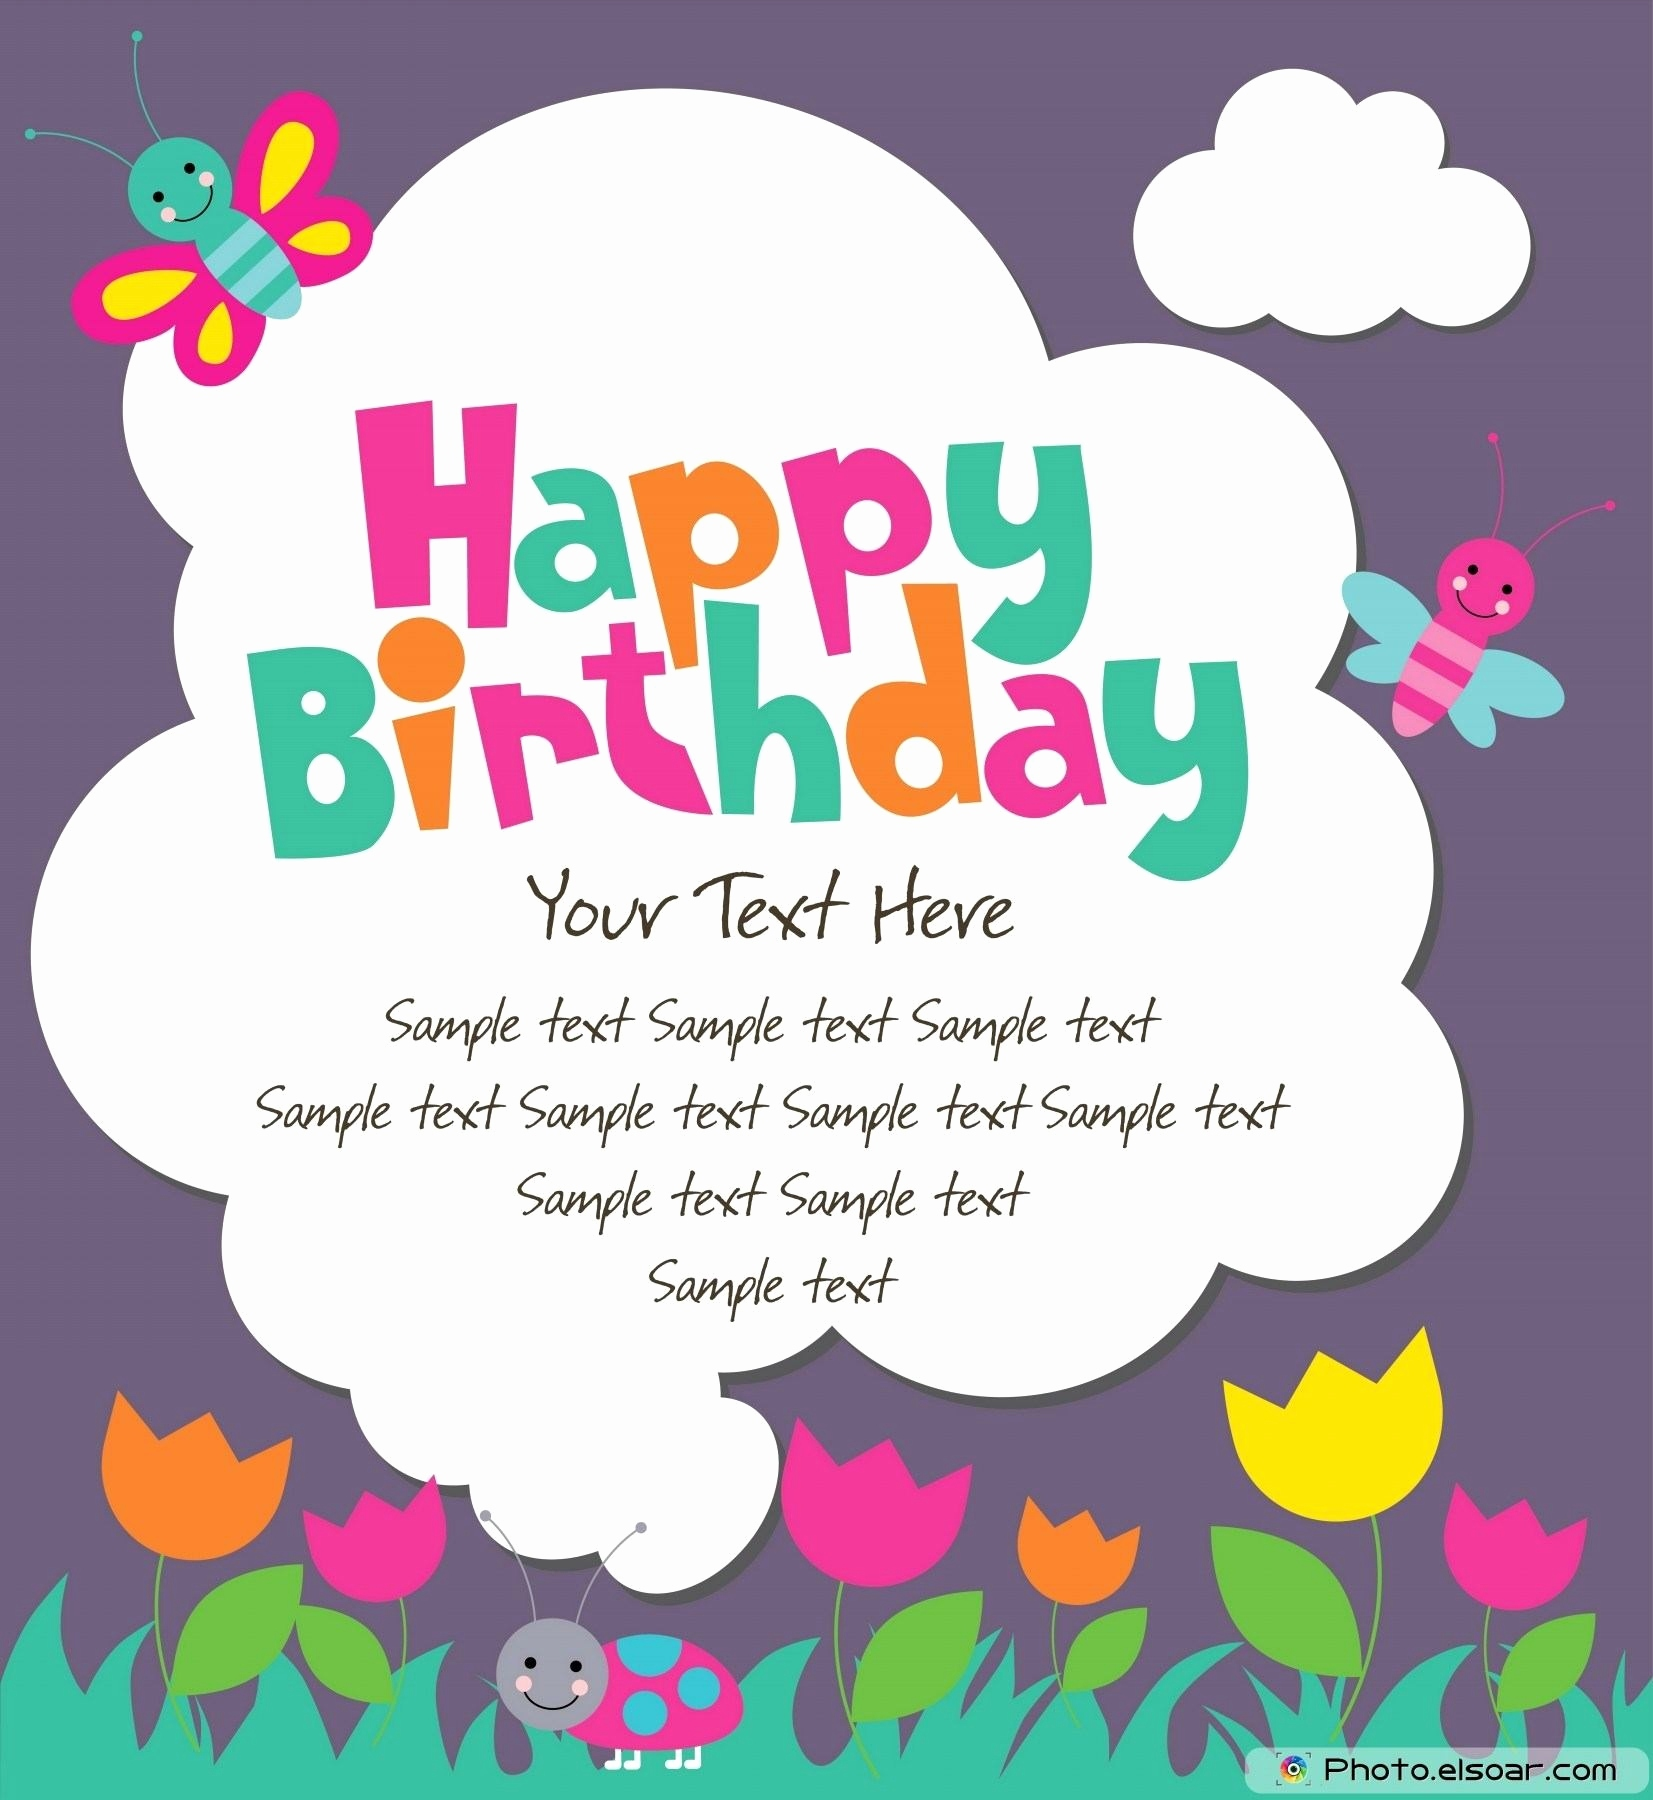 birthday image maker ; happy-birthday-online-cards-unique-40-elegant-birthday-card-maker-of-happy-birthday-online-cards